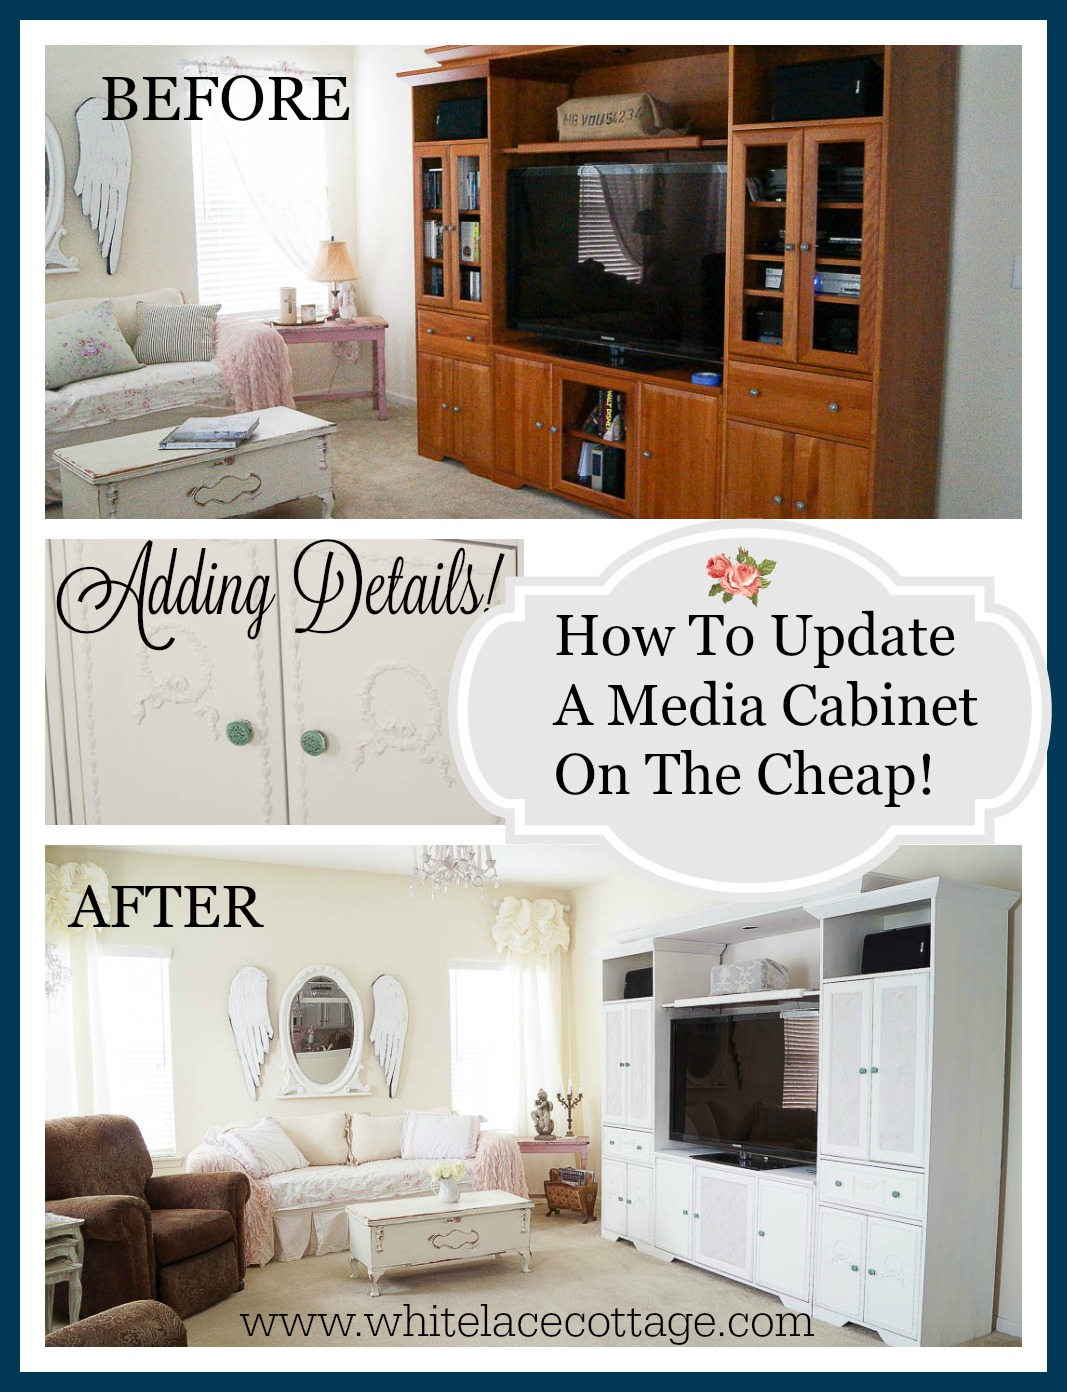 White lace cottage is one of our favorite bloggers for How to update cabinets